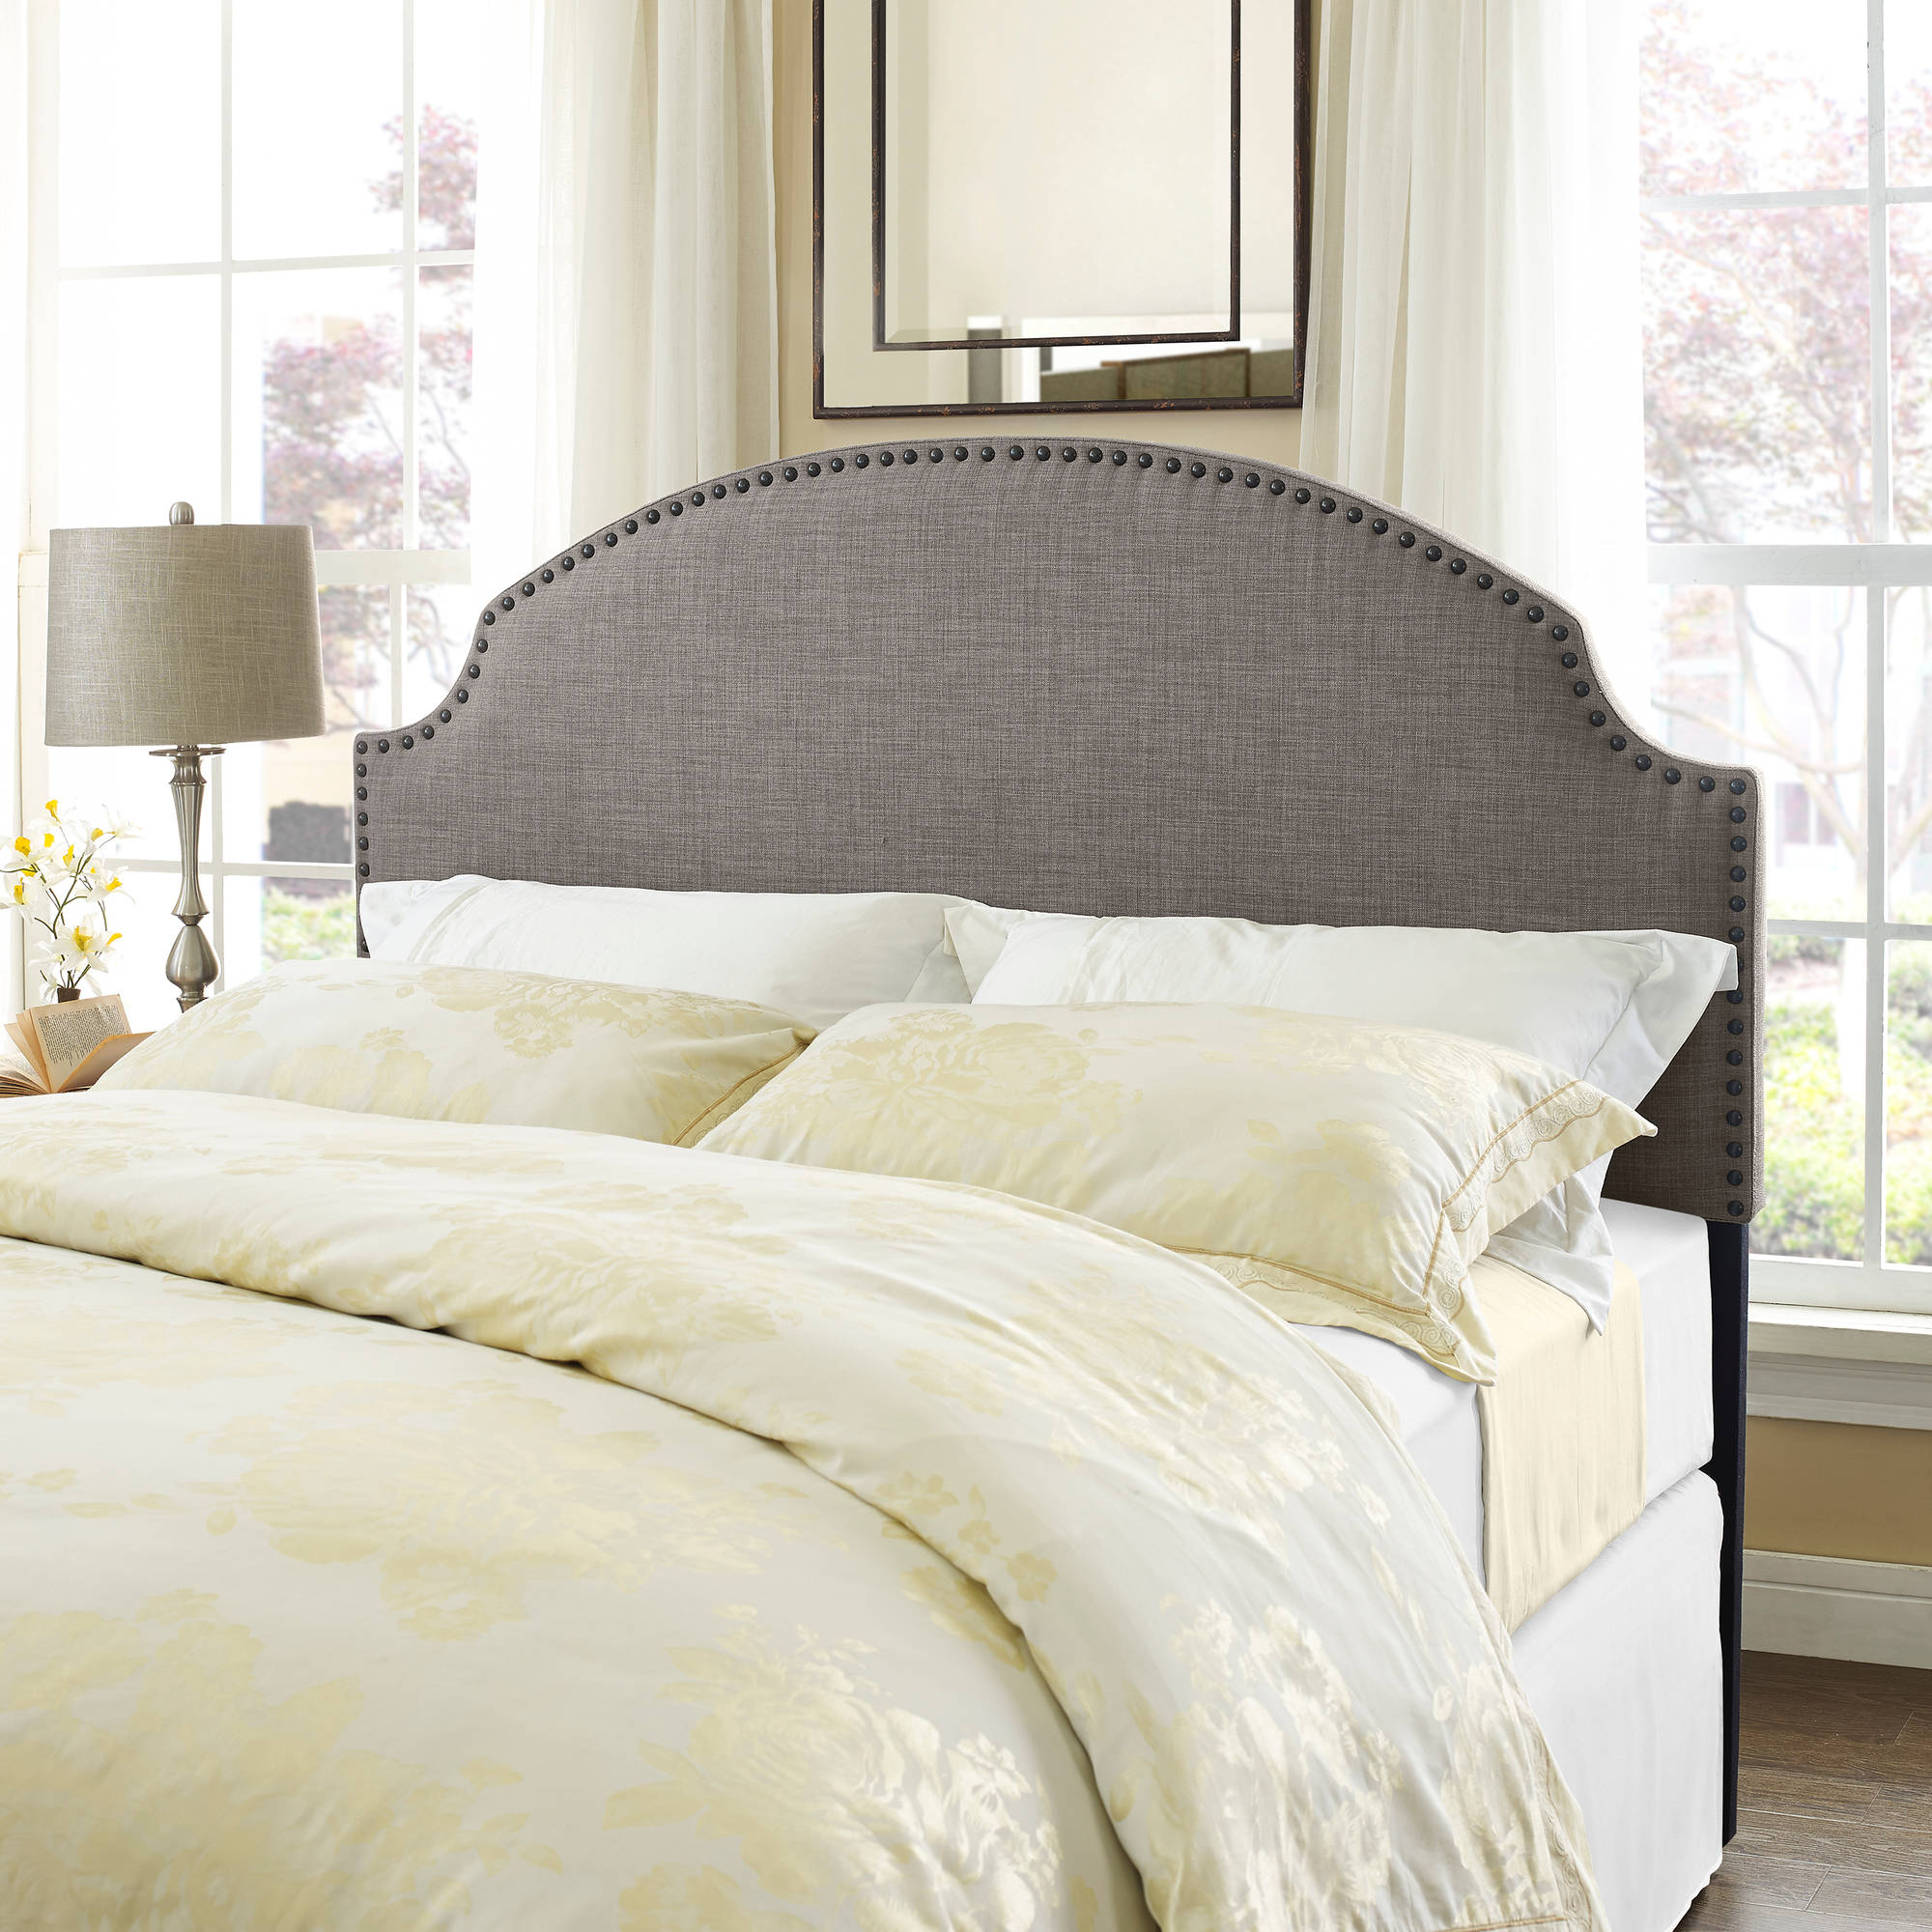 Dorel Living Skylar Nailhead Linen Headboard Full/Queen, Multiple Colors